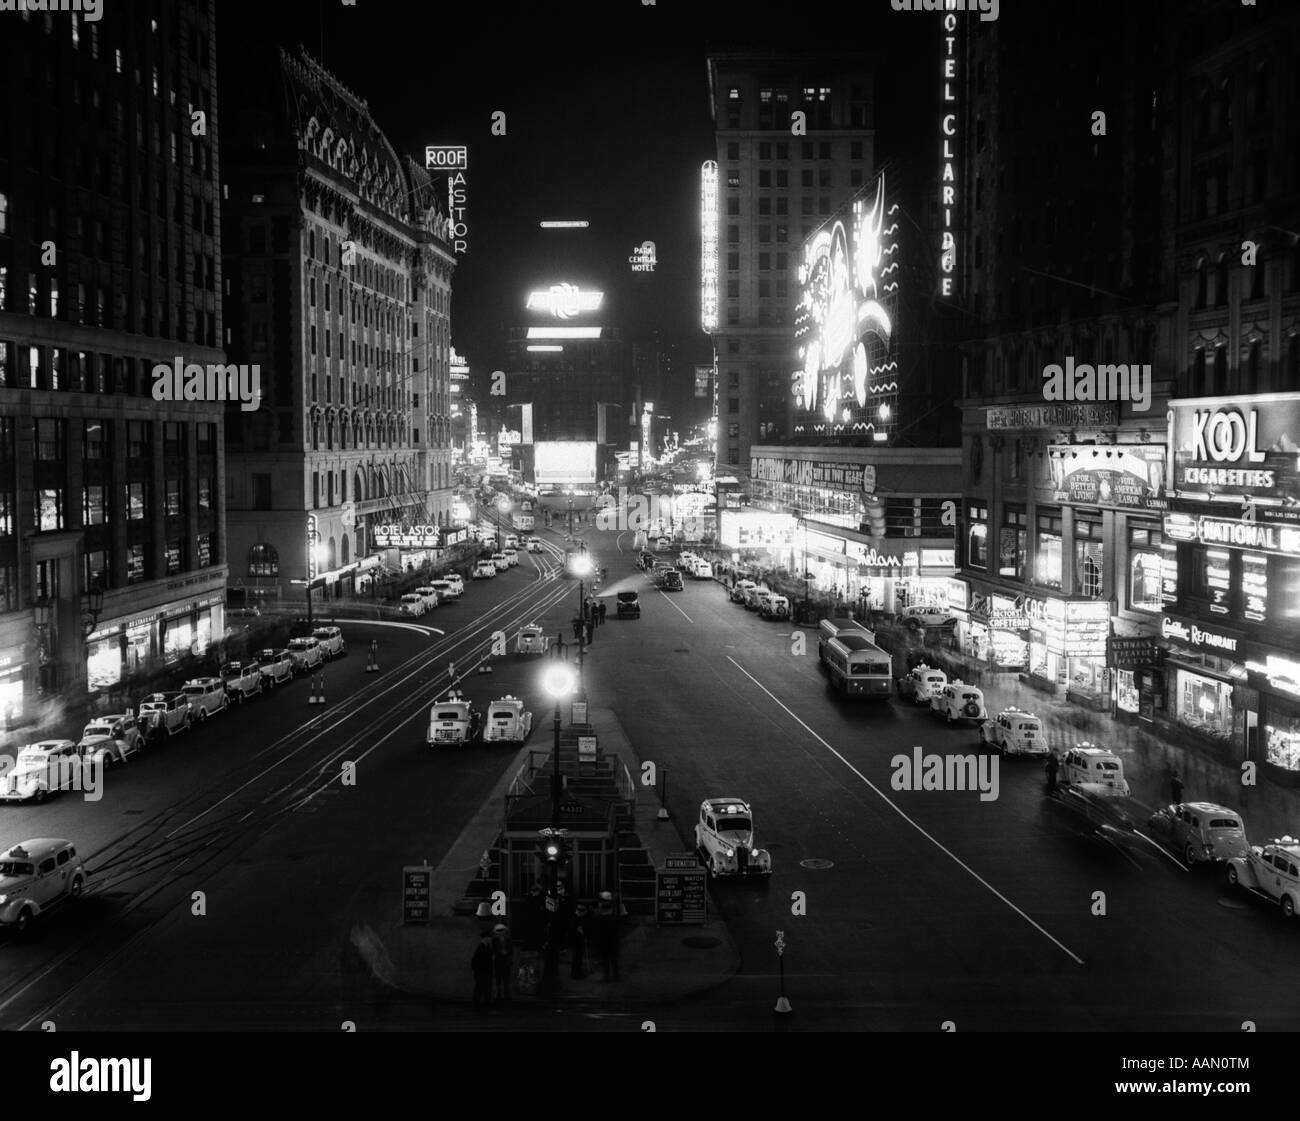 1930s OVERHEAD OF TIMES SQUARE LIT UP AT NIGHT WITH CARS LINING CURBS - Stock Image